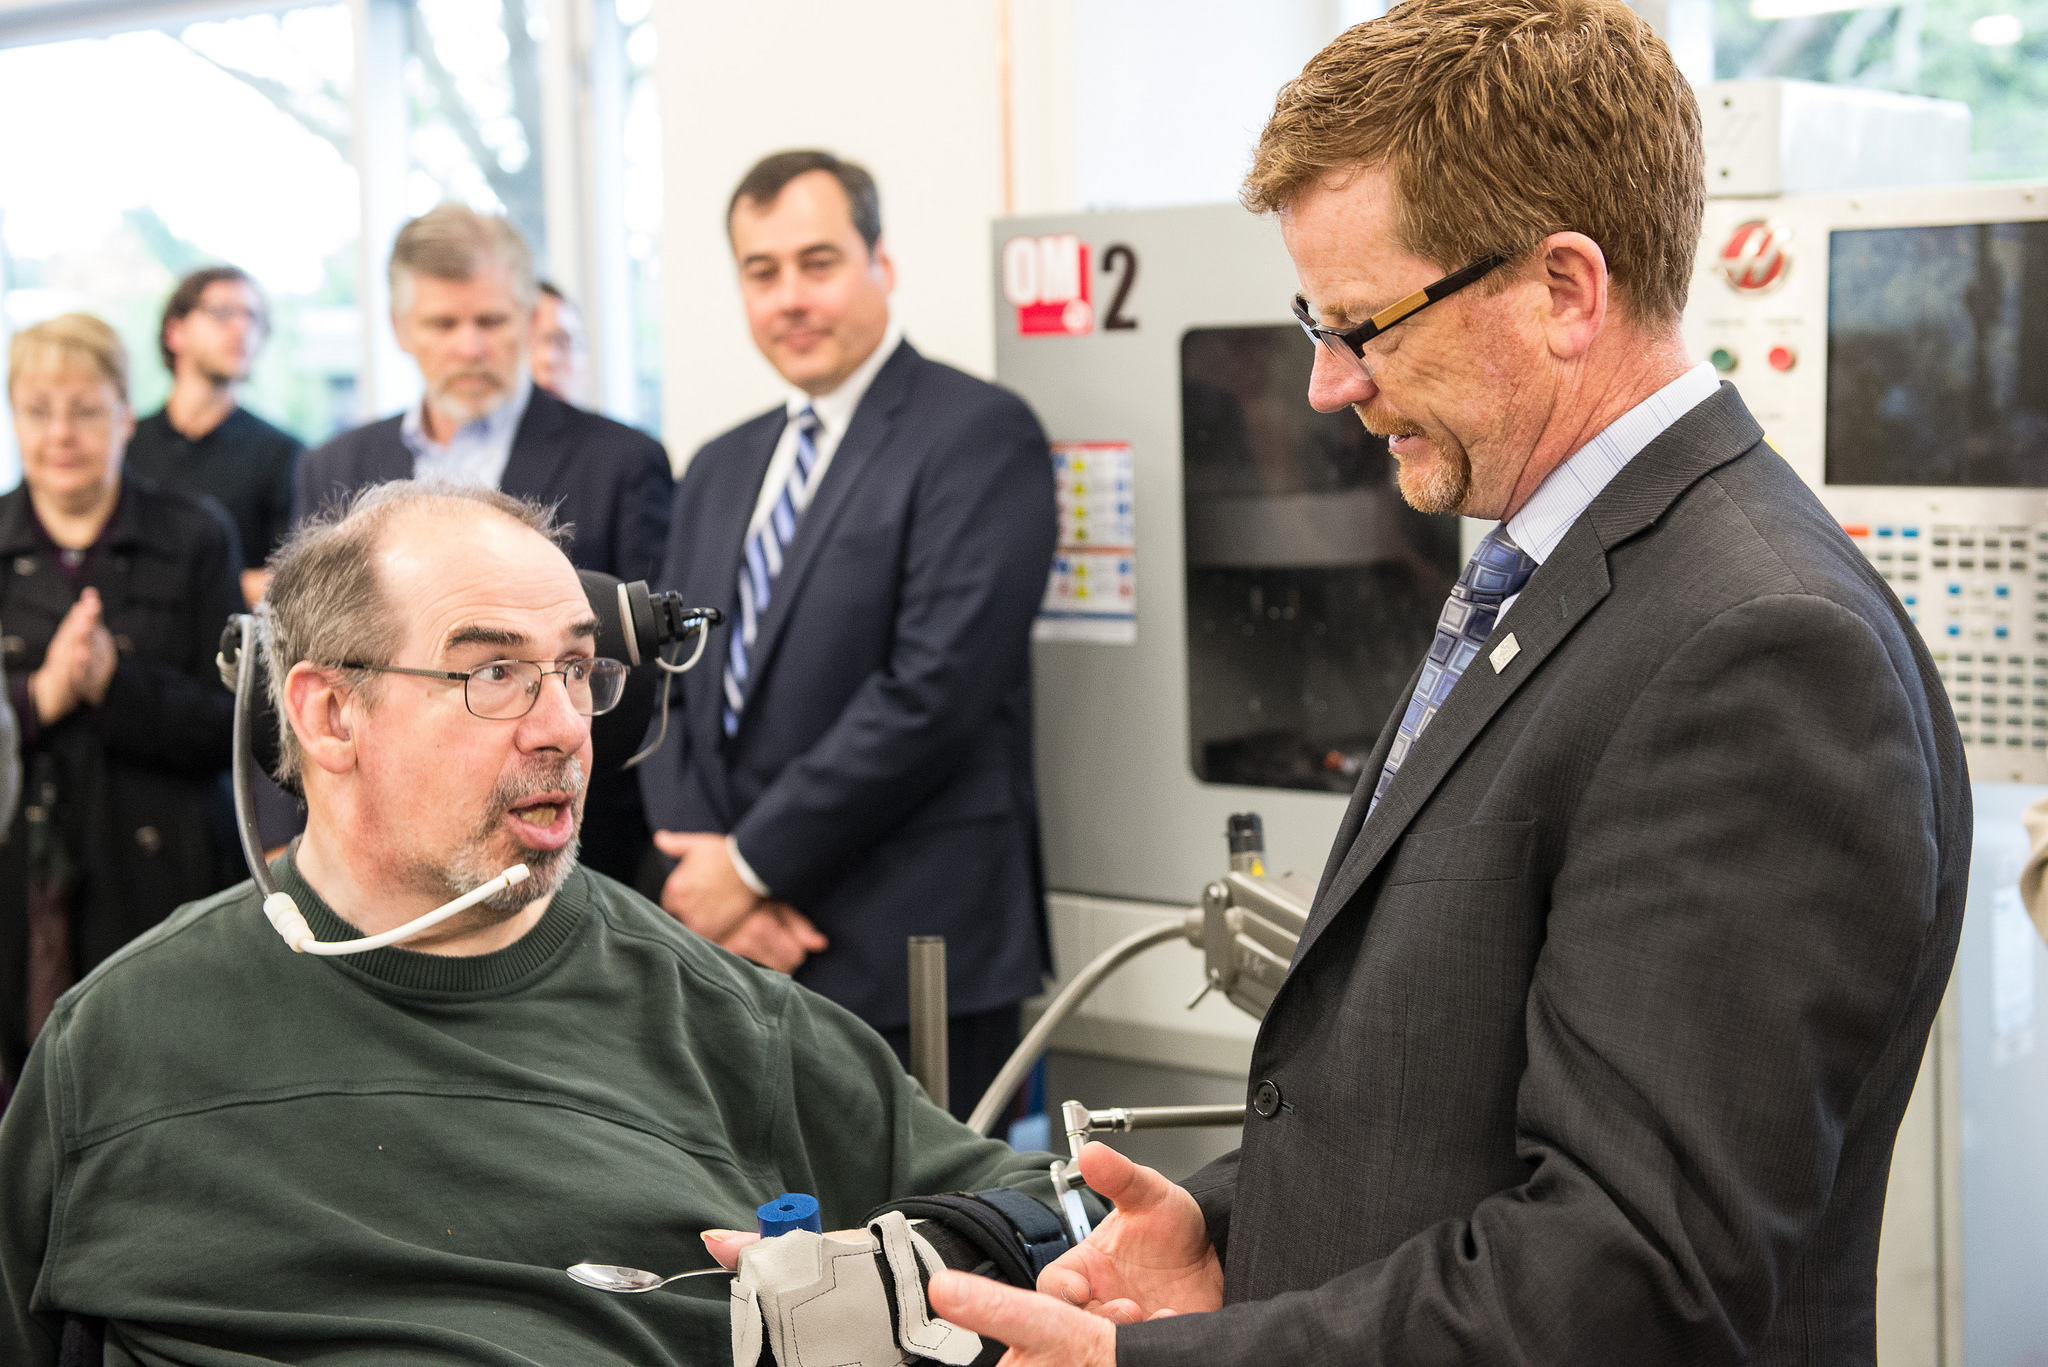 Advances in technologies that support movement, speech and physical action are starting to have a positive impact on the lives of those with disability. Province of British Columbia/Flickr  (CC BY-NC-ND 2.0)